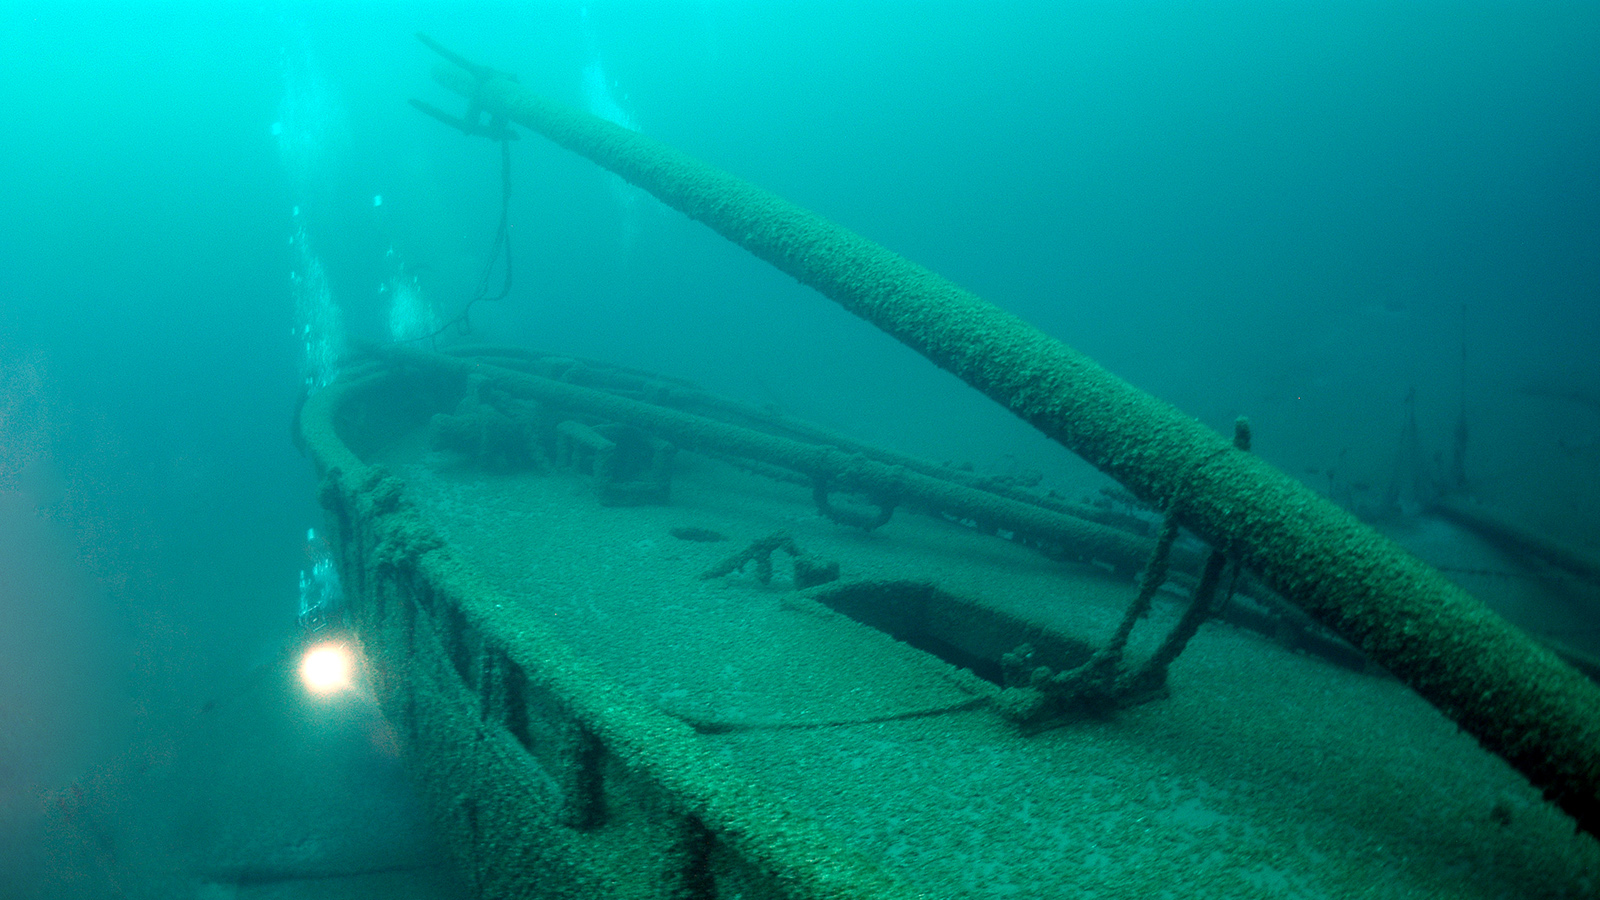 Underwater photo of diver exploring the lower hull of a shipwreck